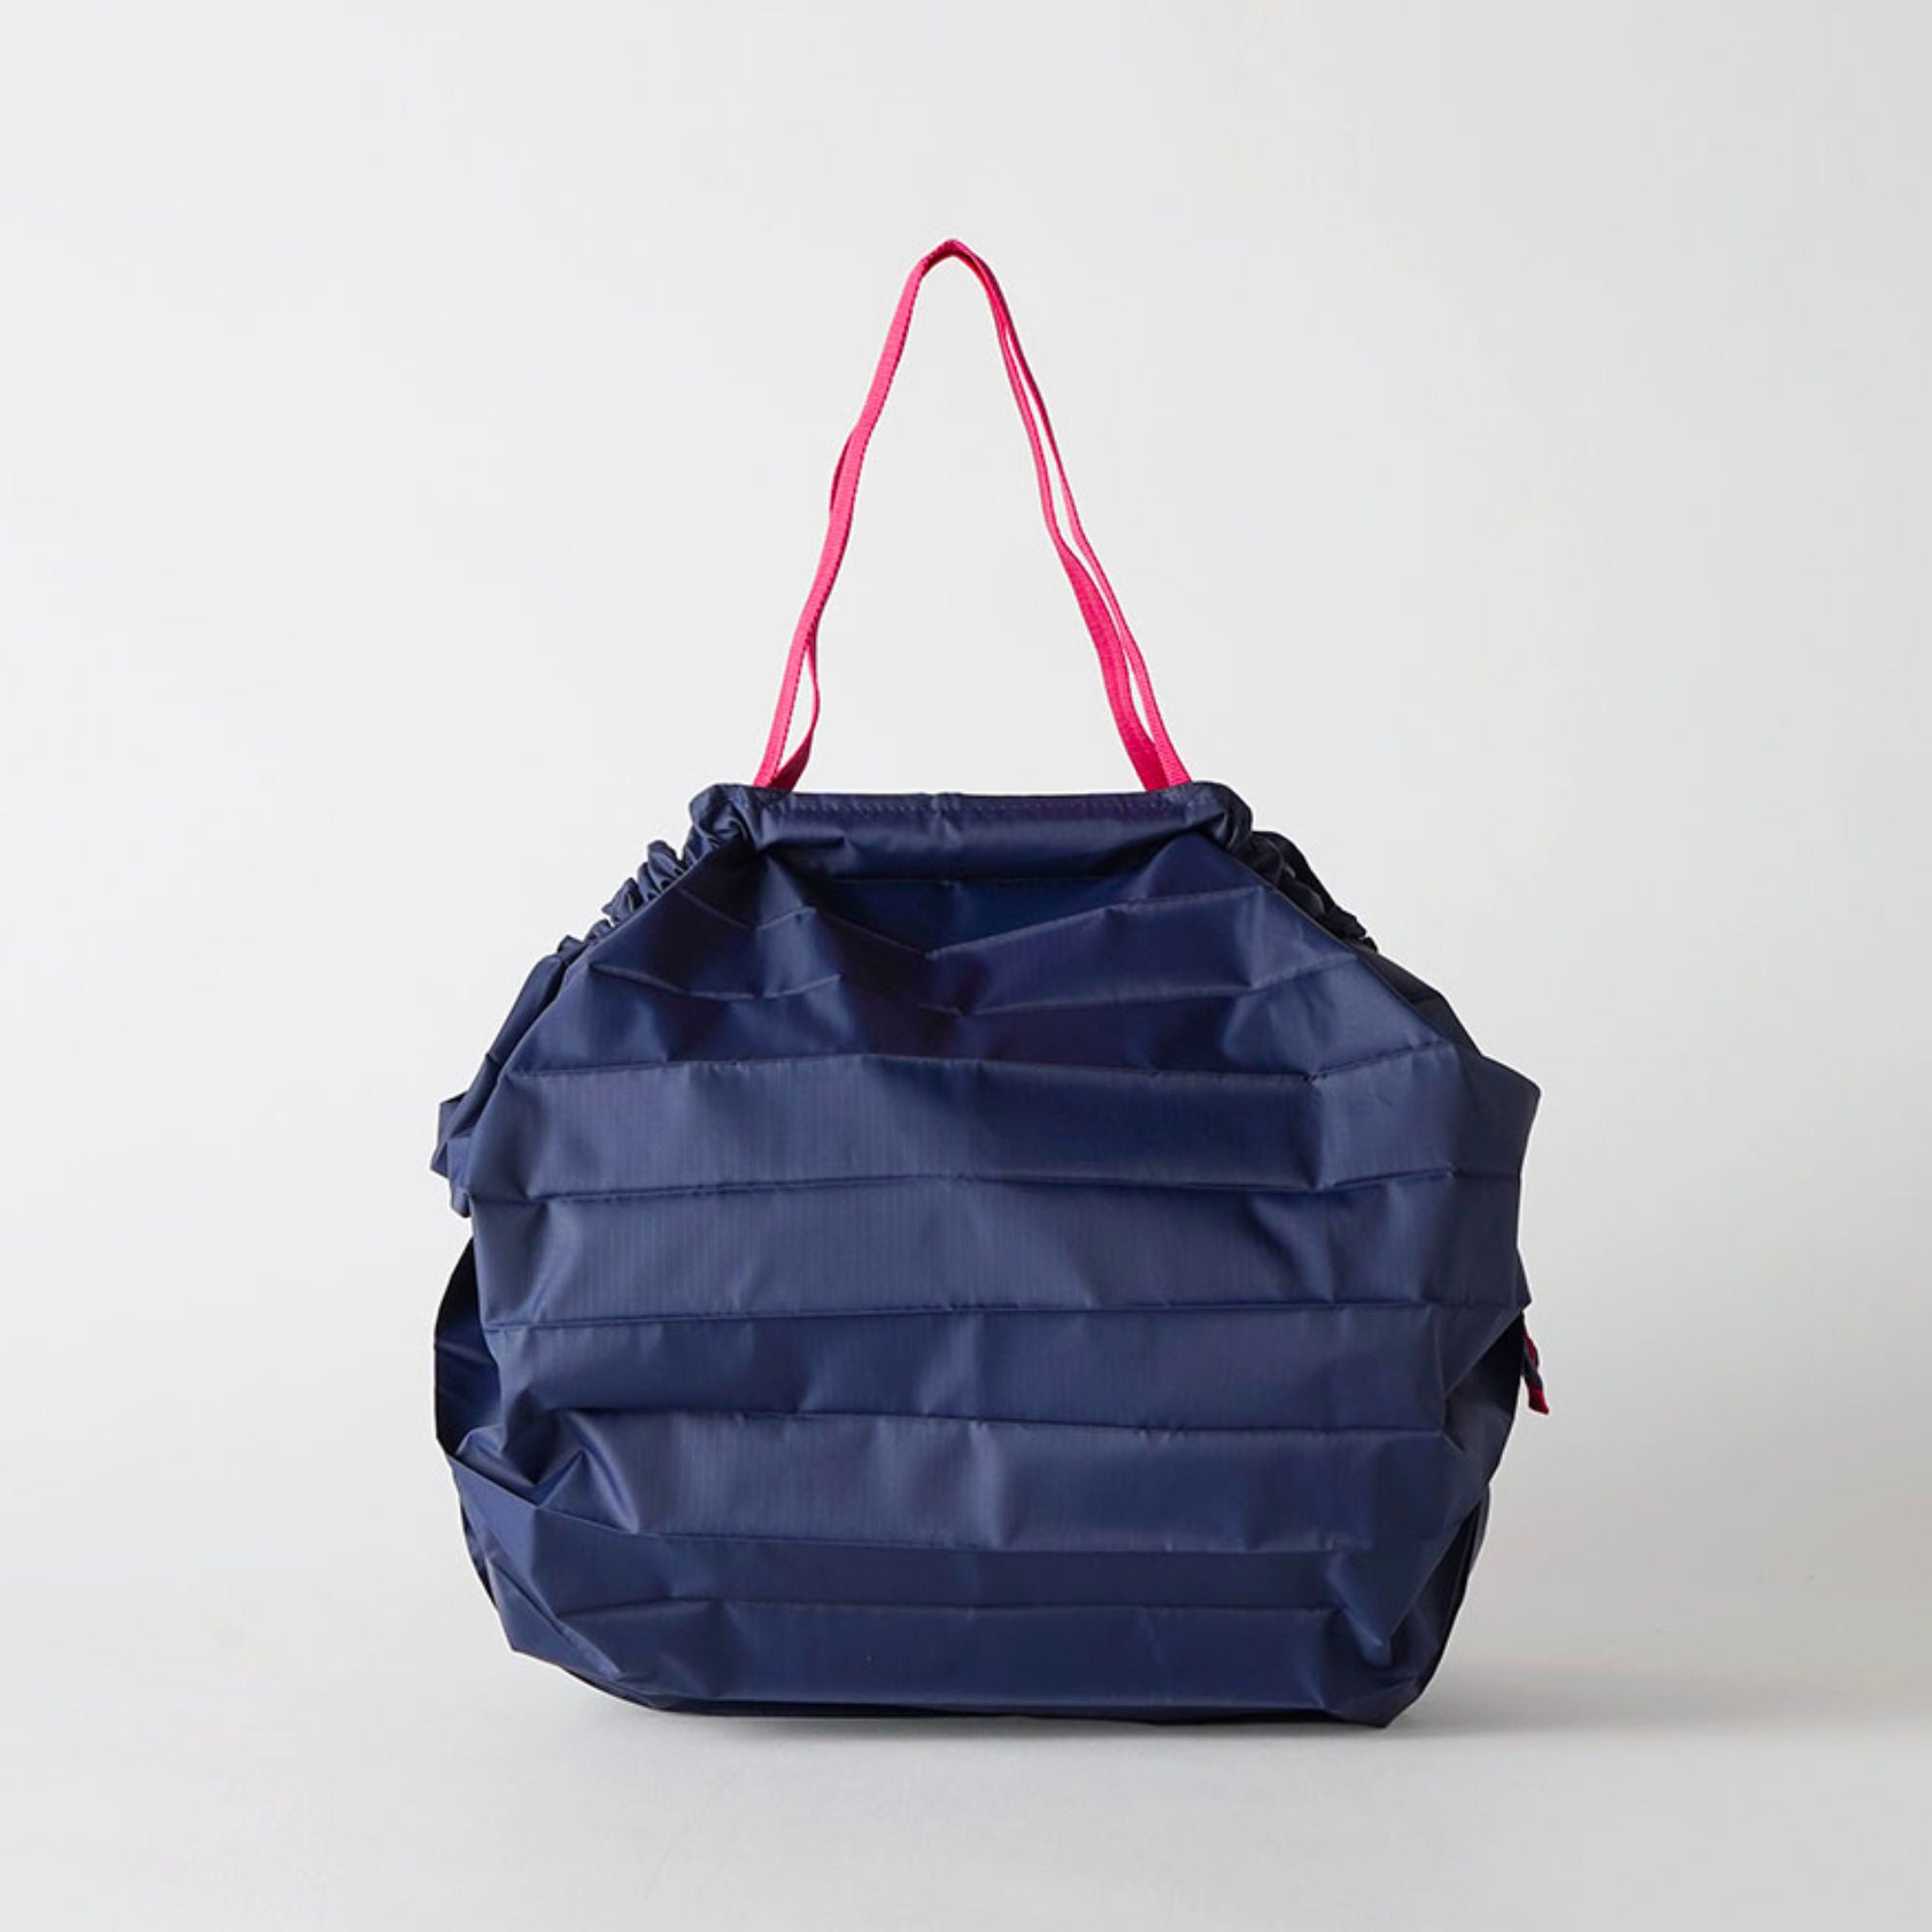 Marna Shupatto Compact Bag M , Navy